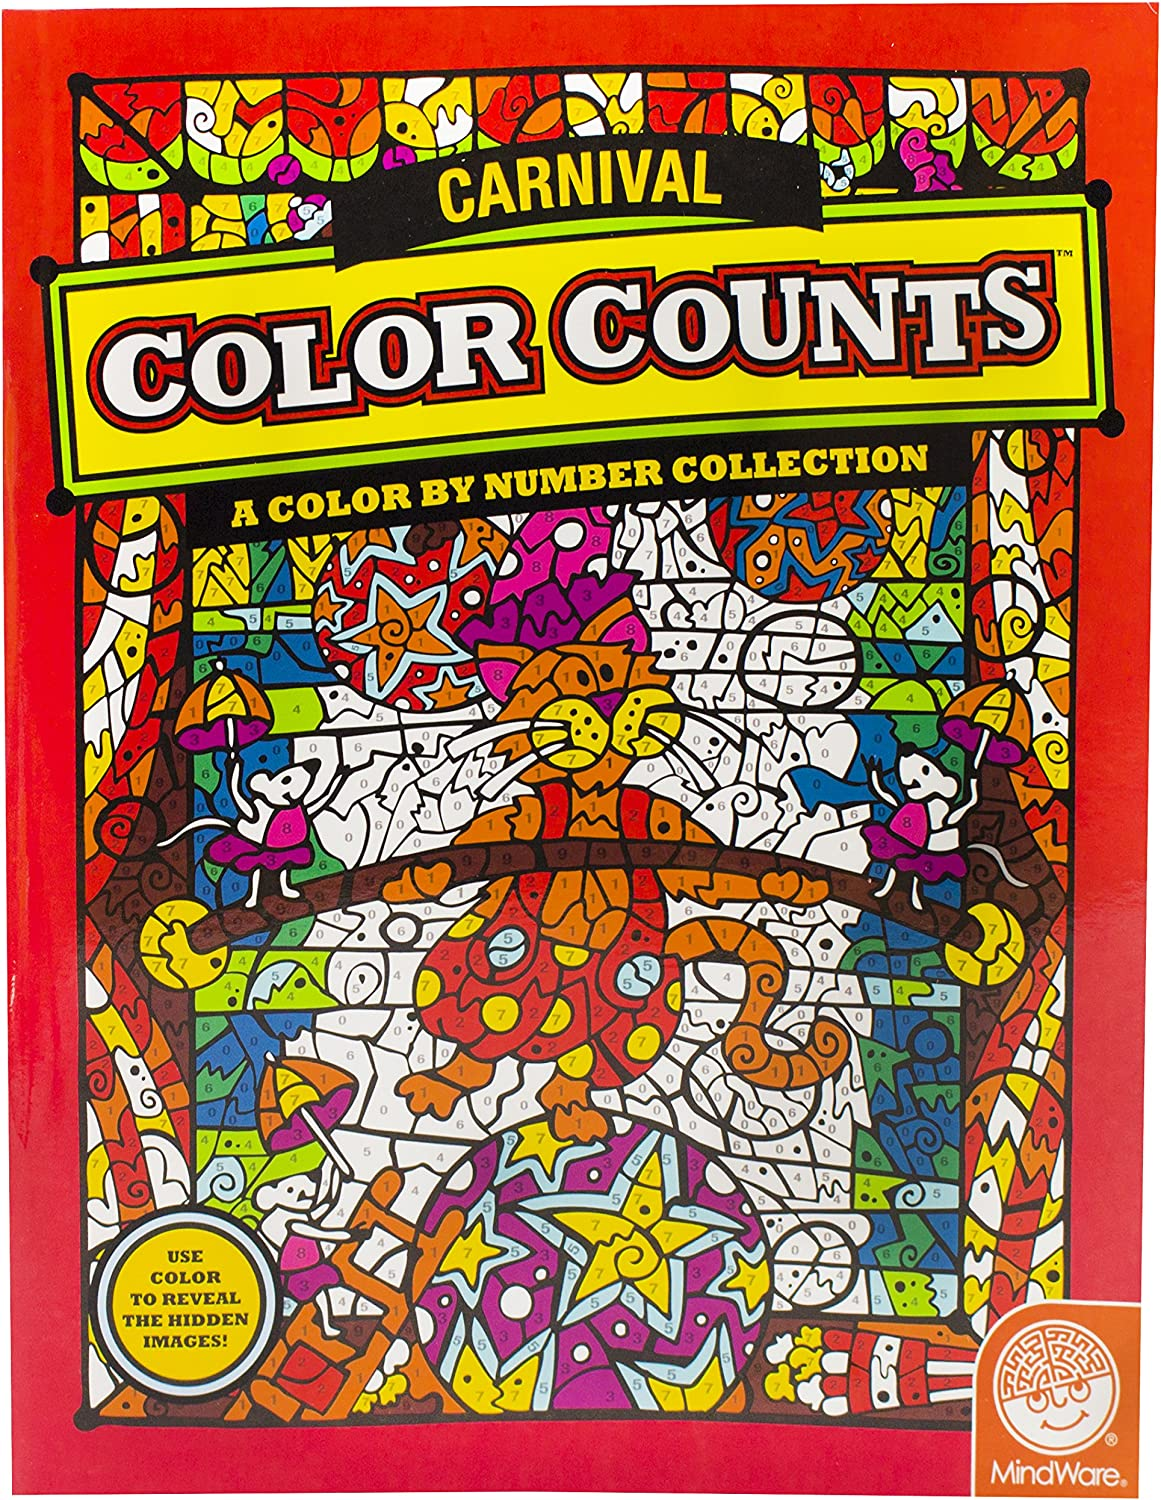 MindWare color Counts  Carnival